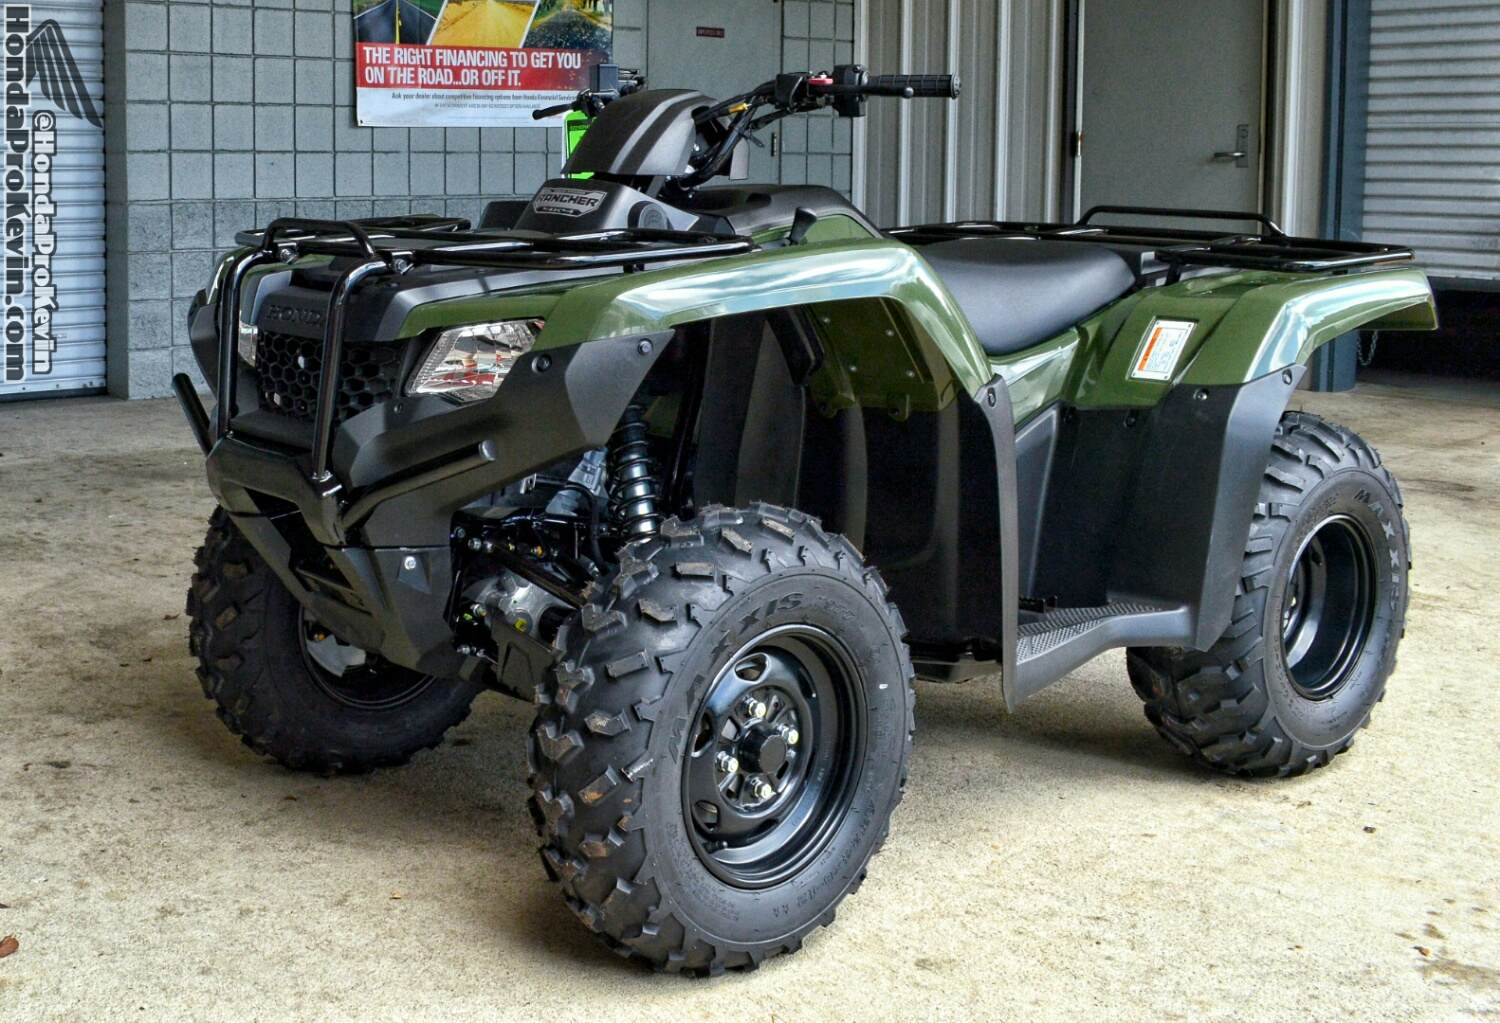 2019 Honda Rancher ES 420 ATV Review / Specs | Four Wheeler Buyer's Guide